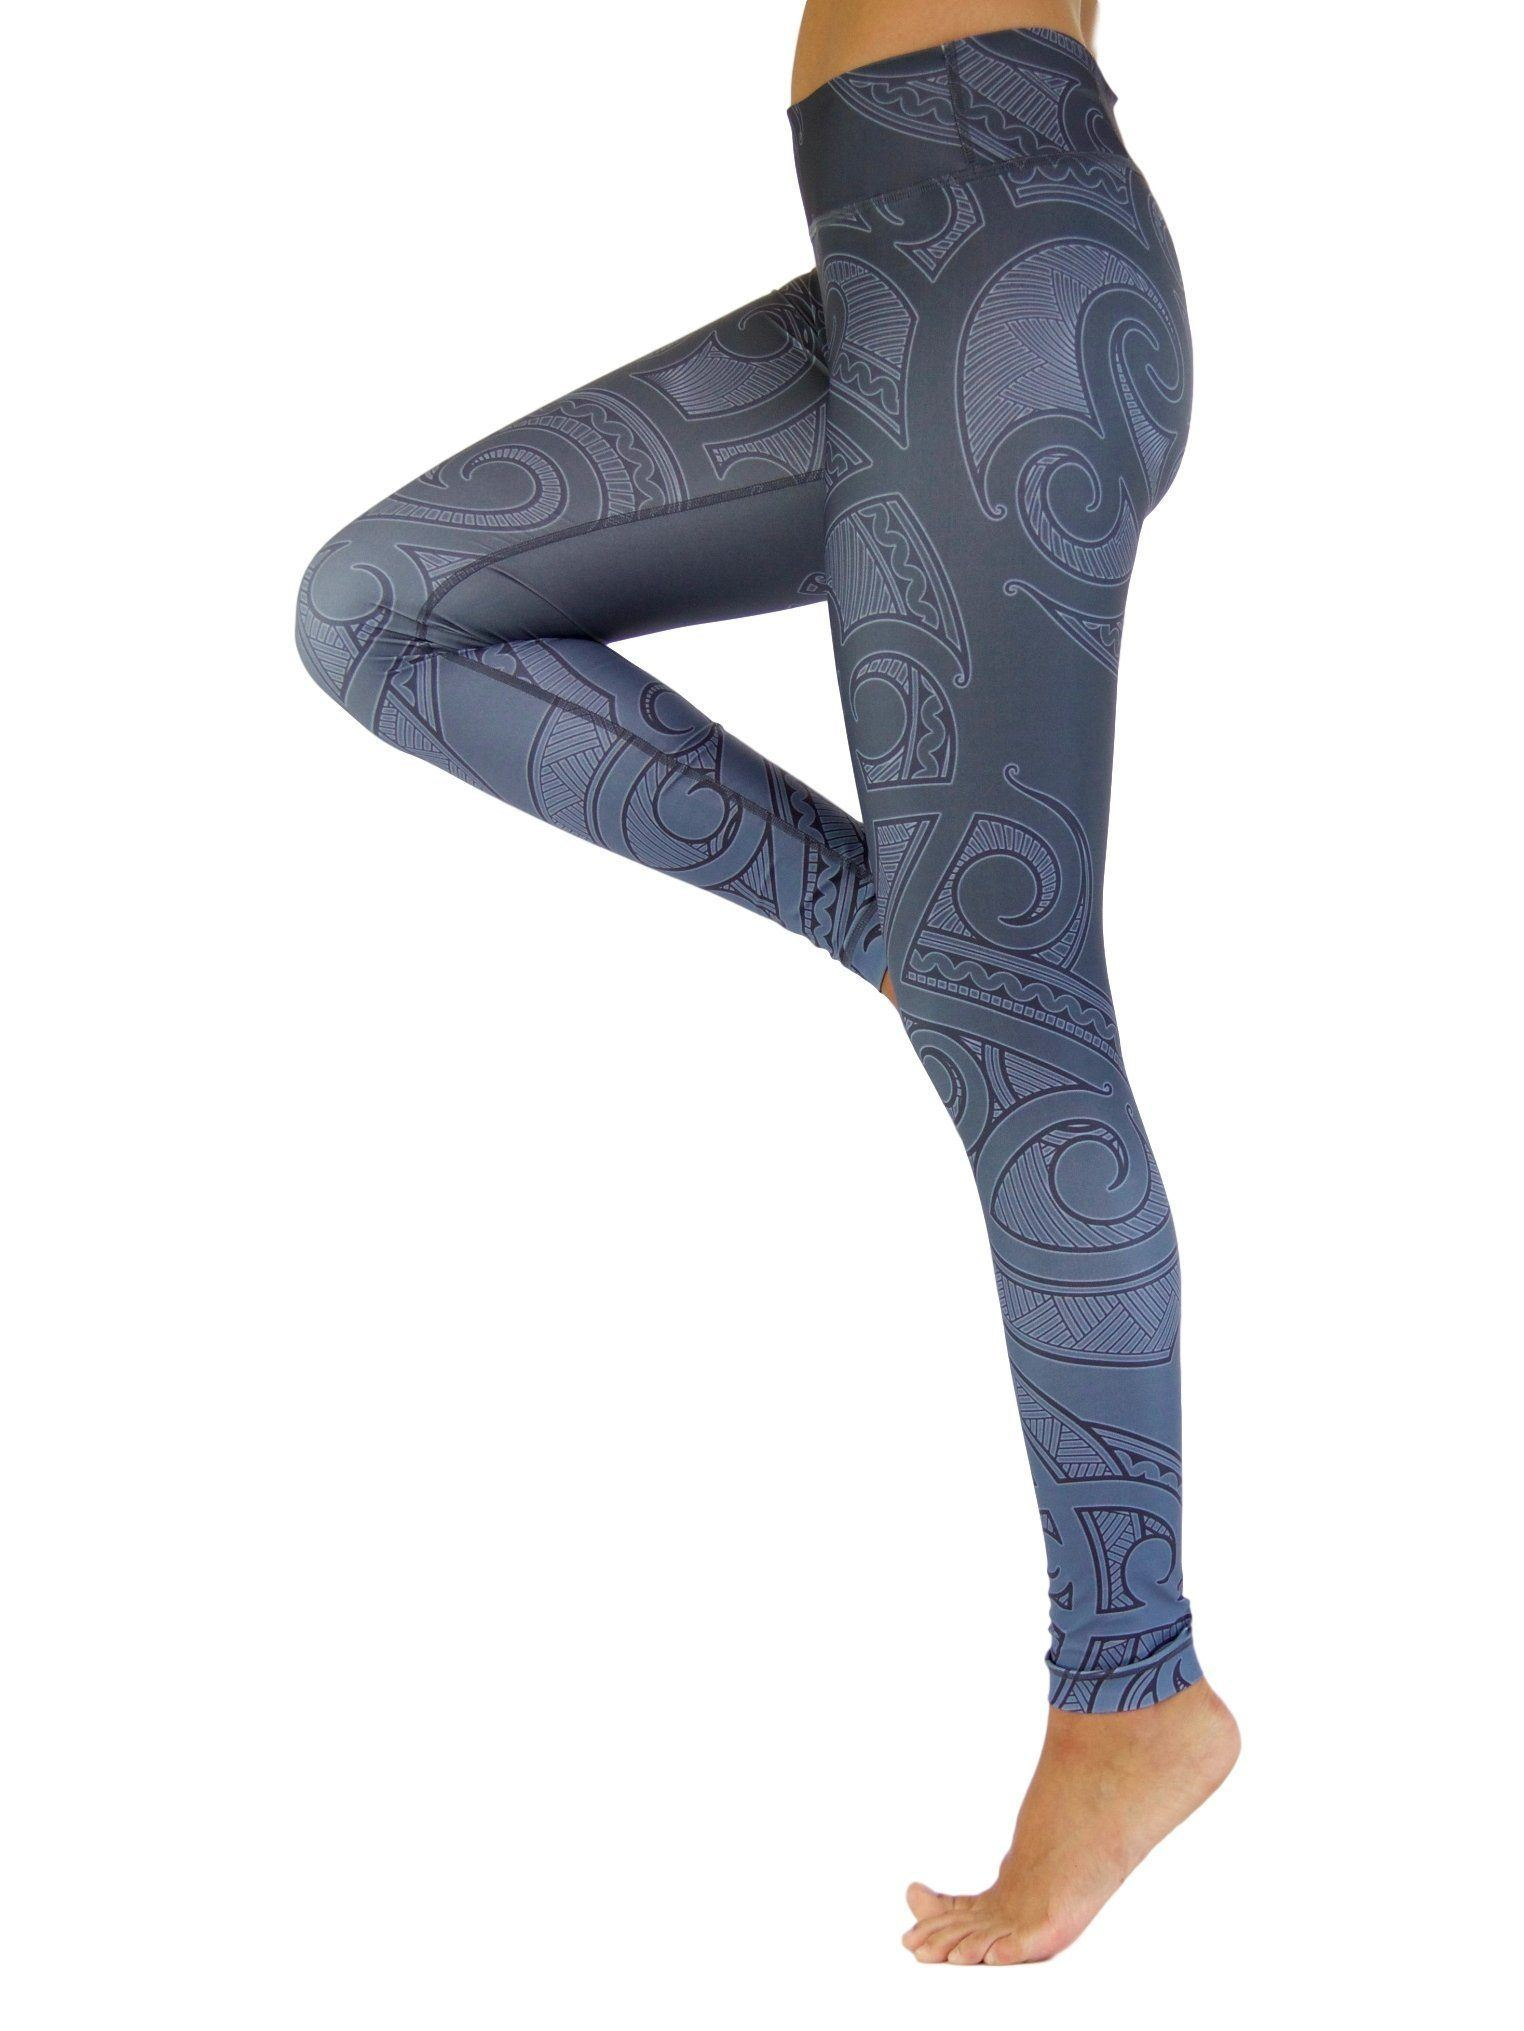 Matau by Niyama - High Quality, , Yoga Legging for Movement Artists.